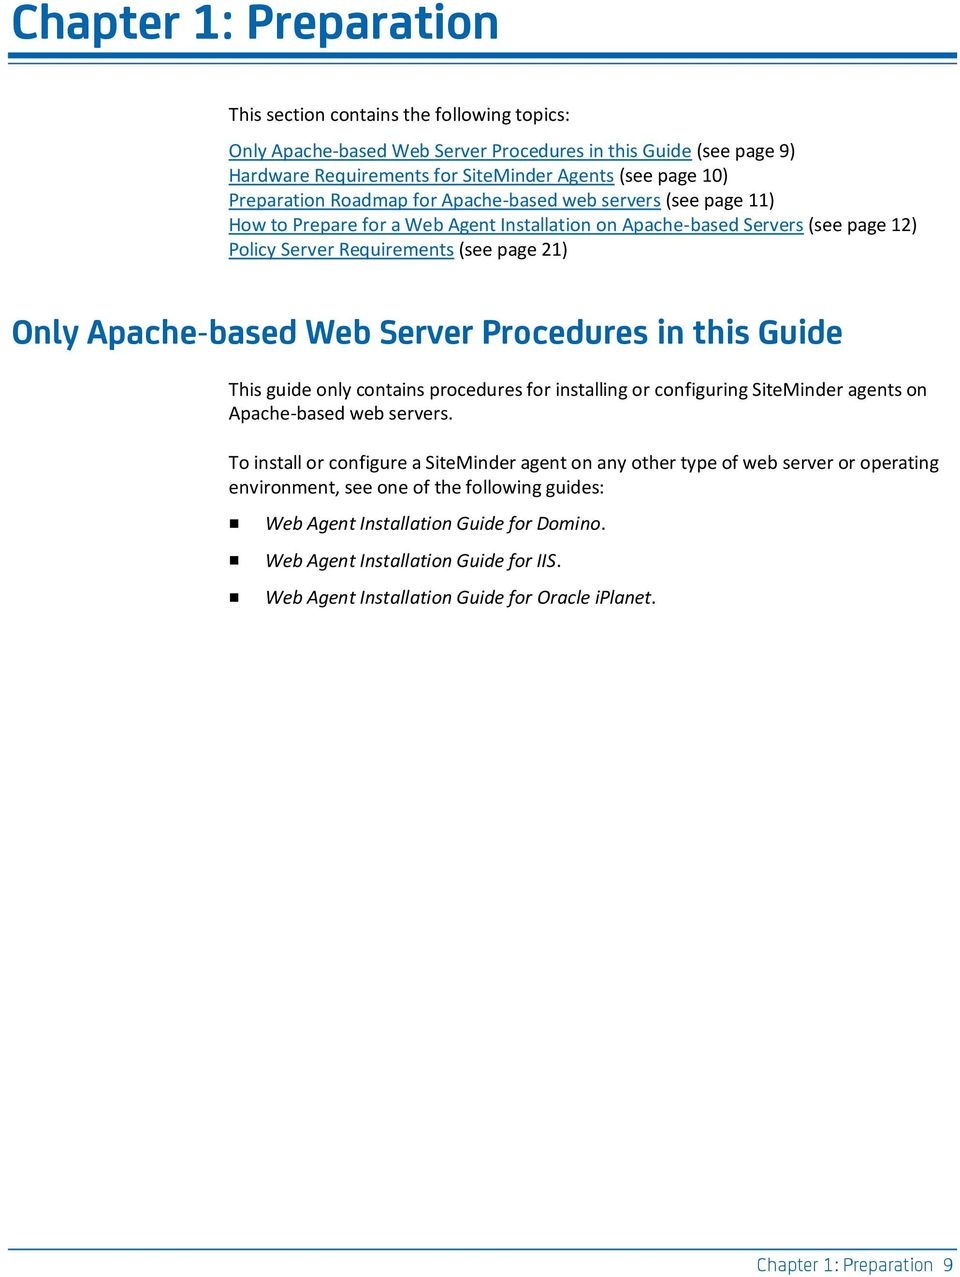 Apache-based Web Server Procedures in this Guide This guide only contains procedures for installing or configuring SiteMinder agents on Apache-based web servers.